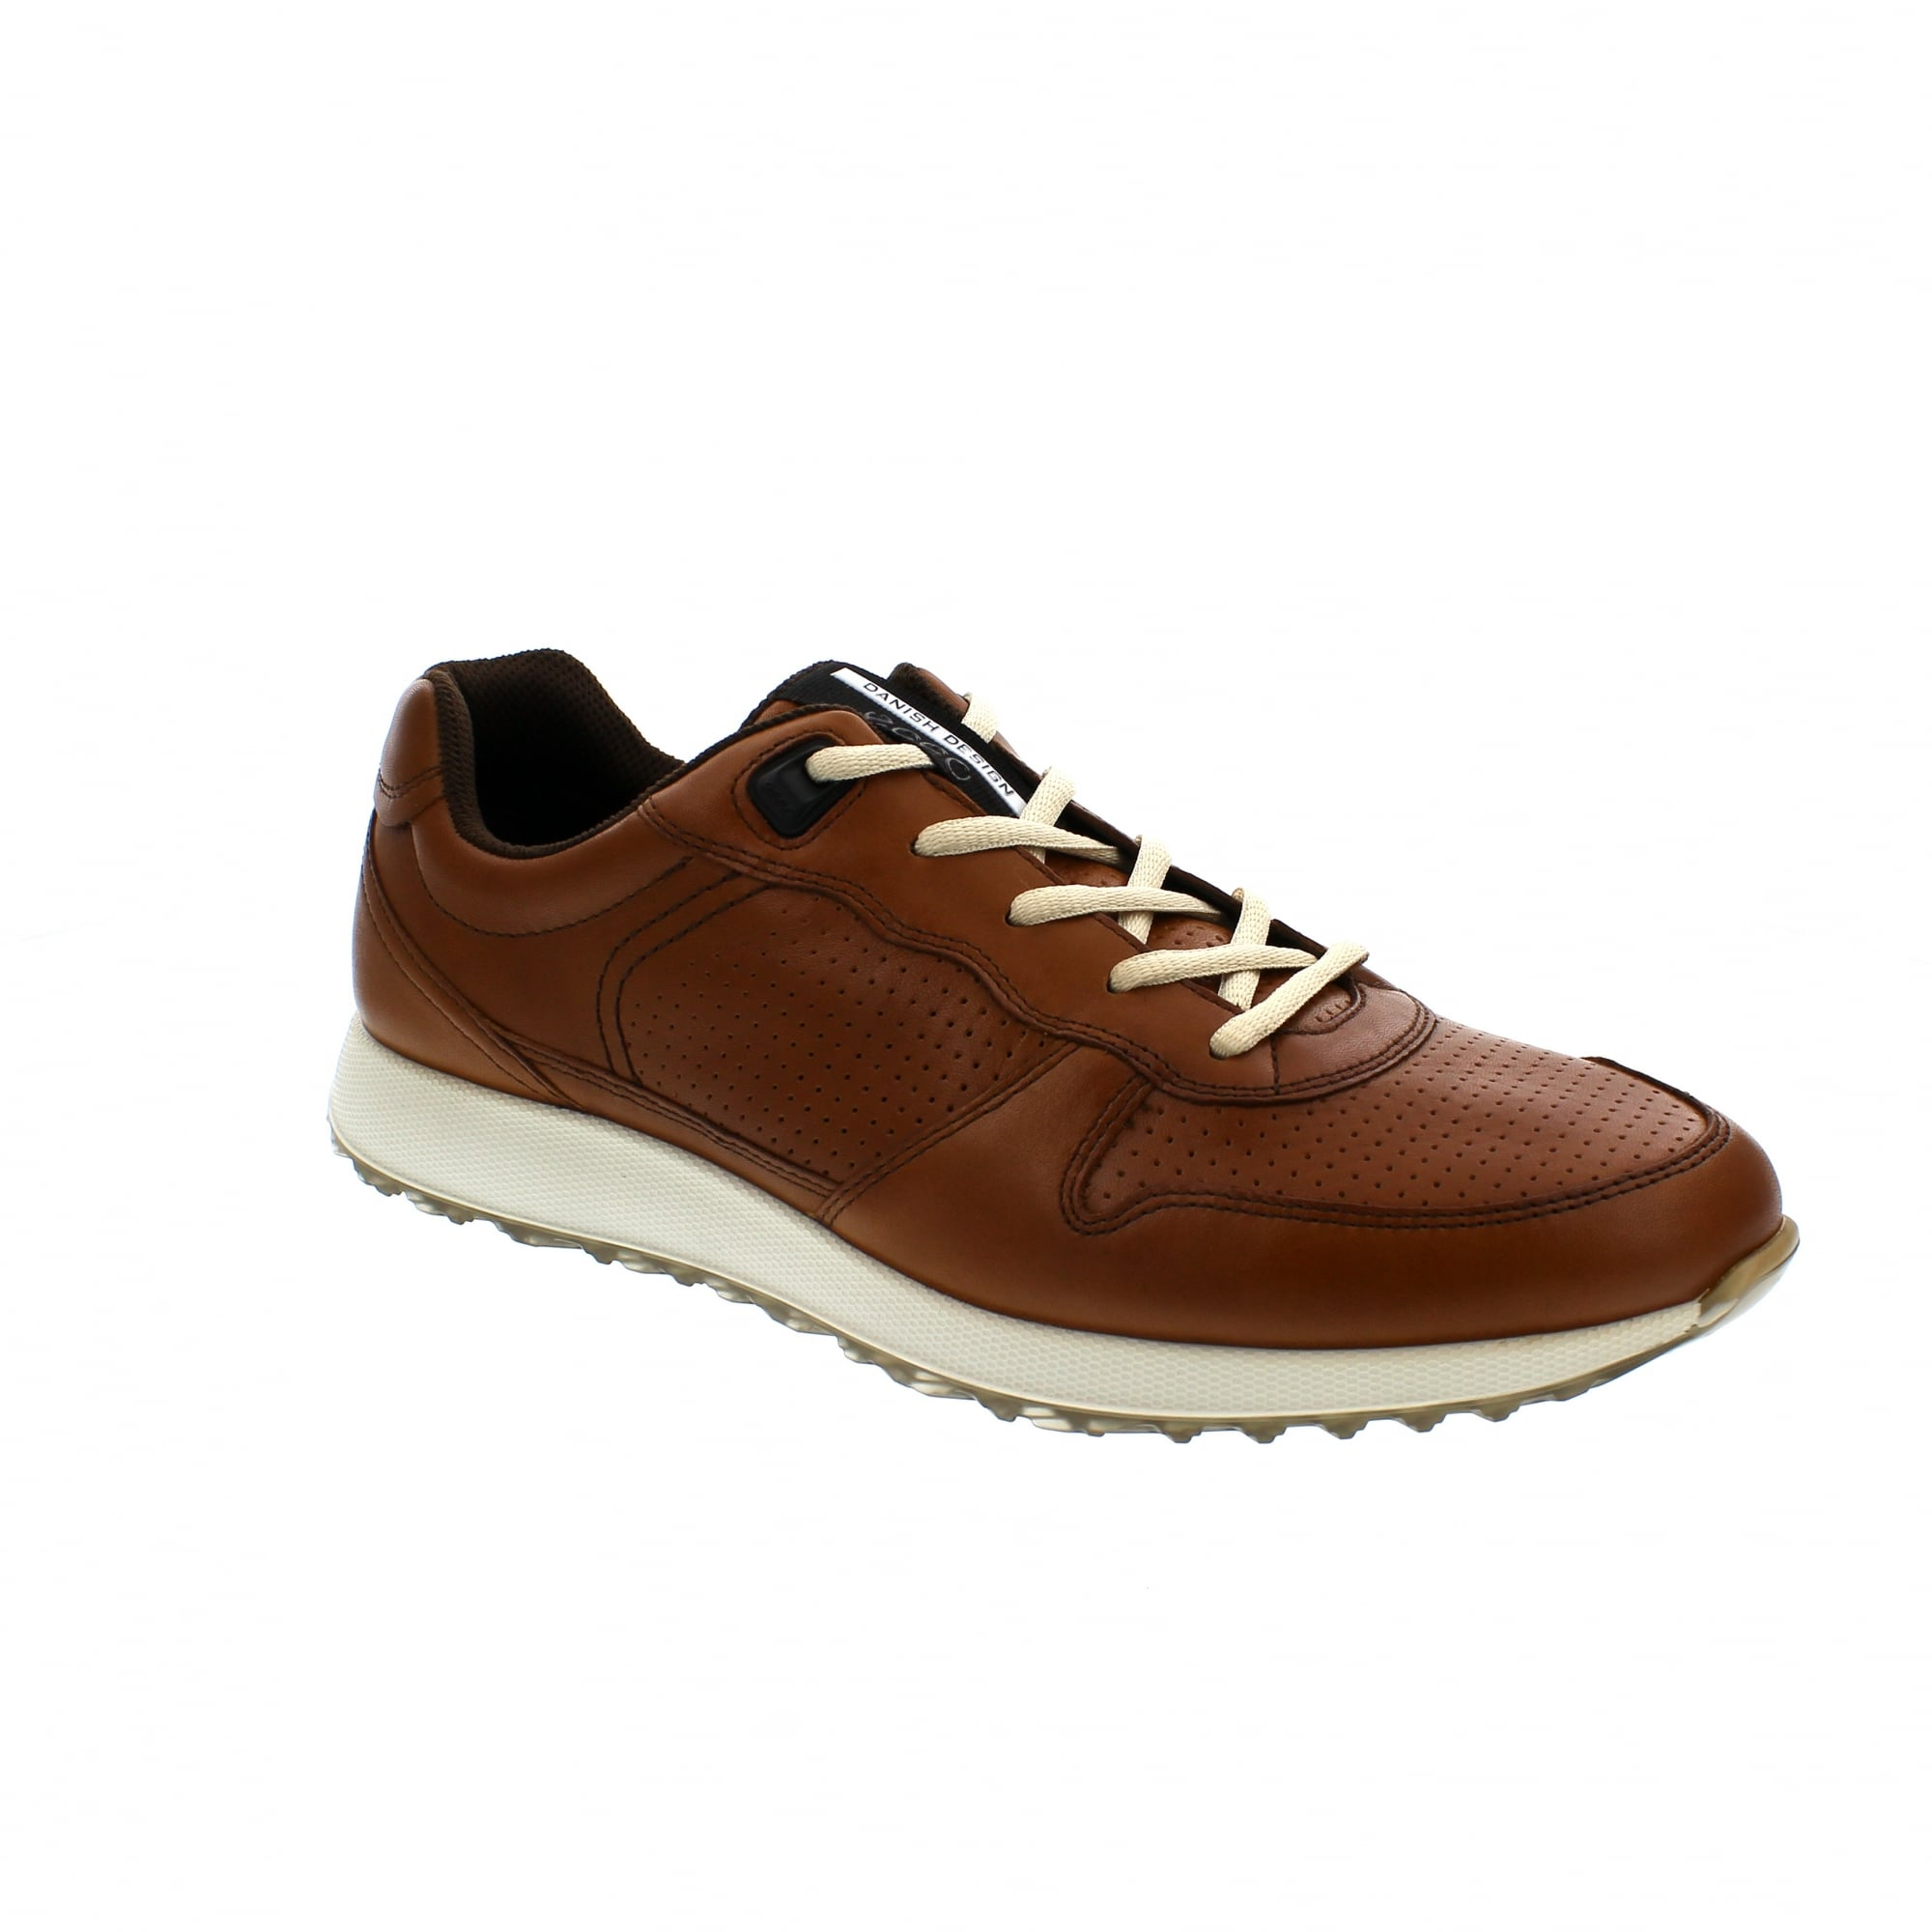 49993adcbe52 Ecco Sneak 430504-01112 Mens Trainers